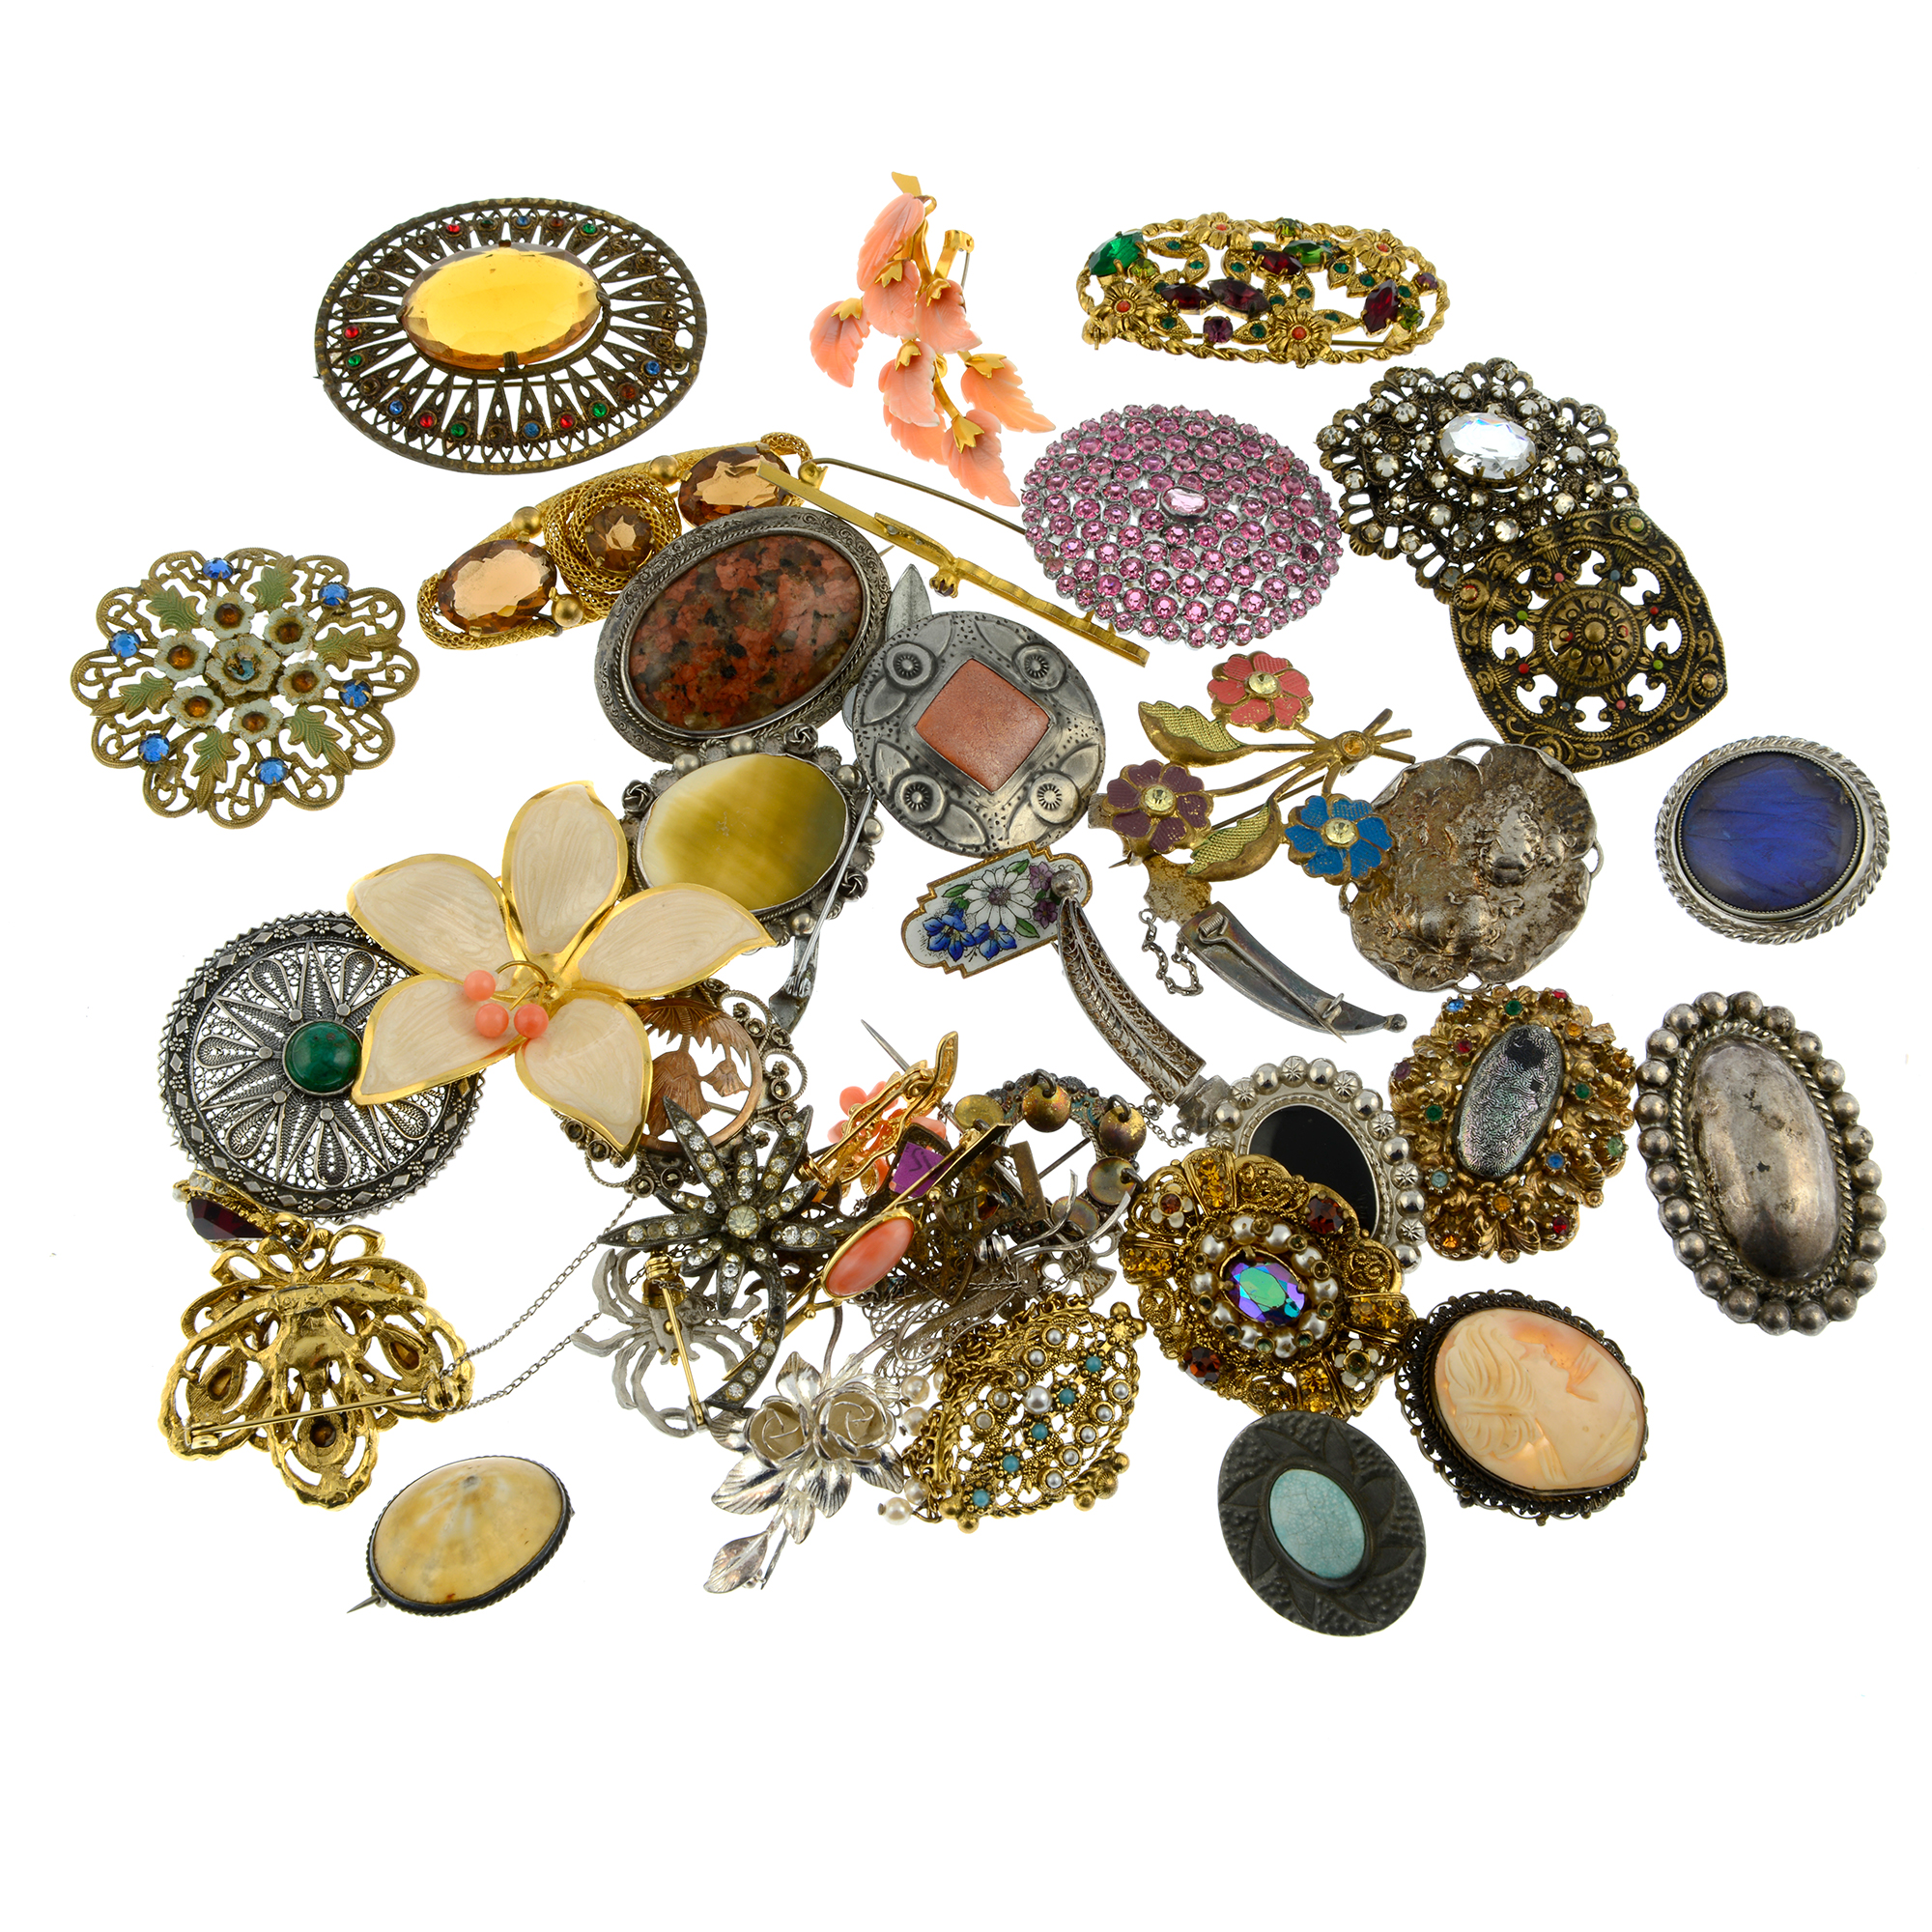 A selection of brooches, to include a cameo brooch. - Image 2 of 2